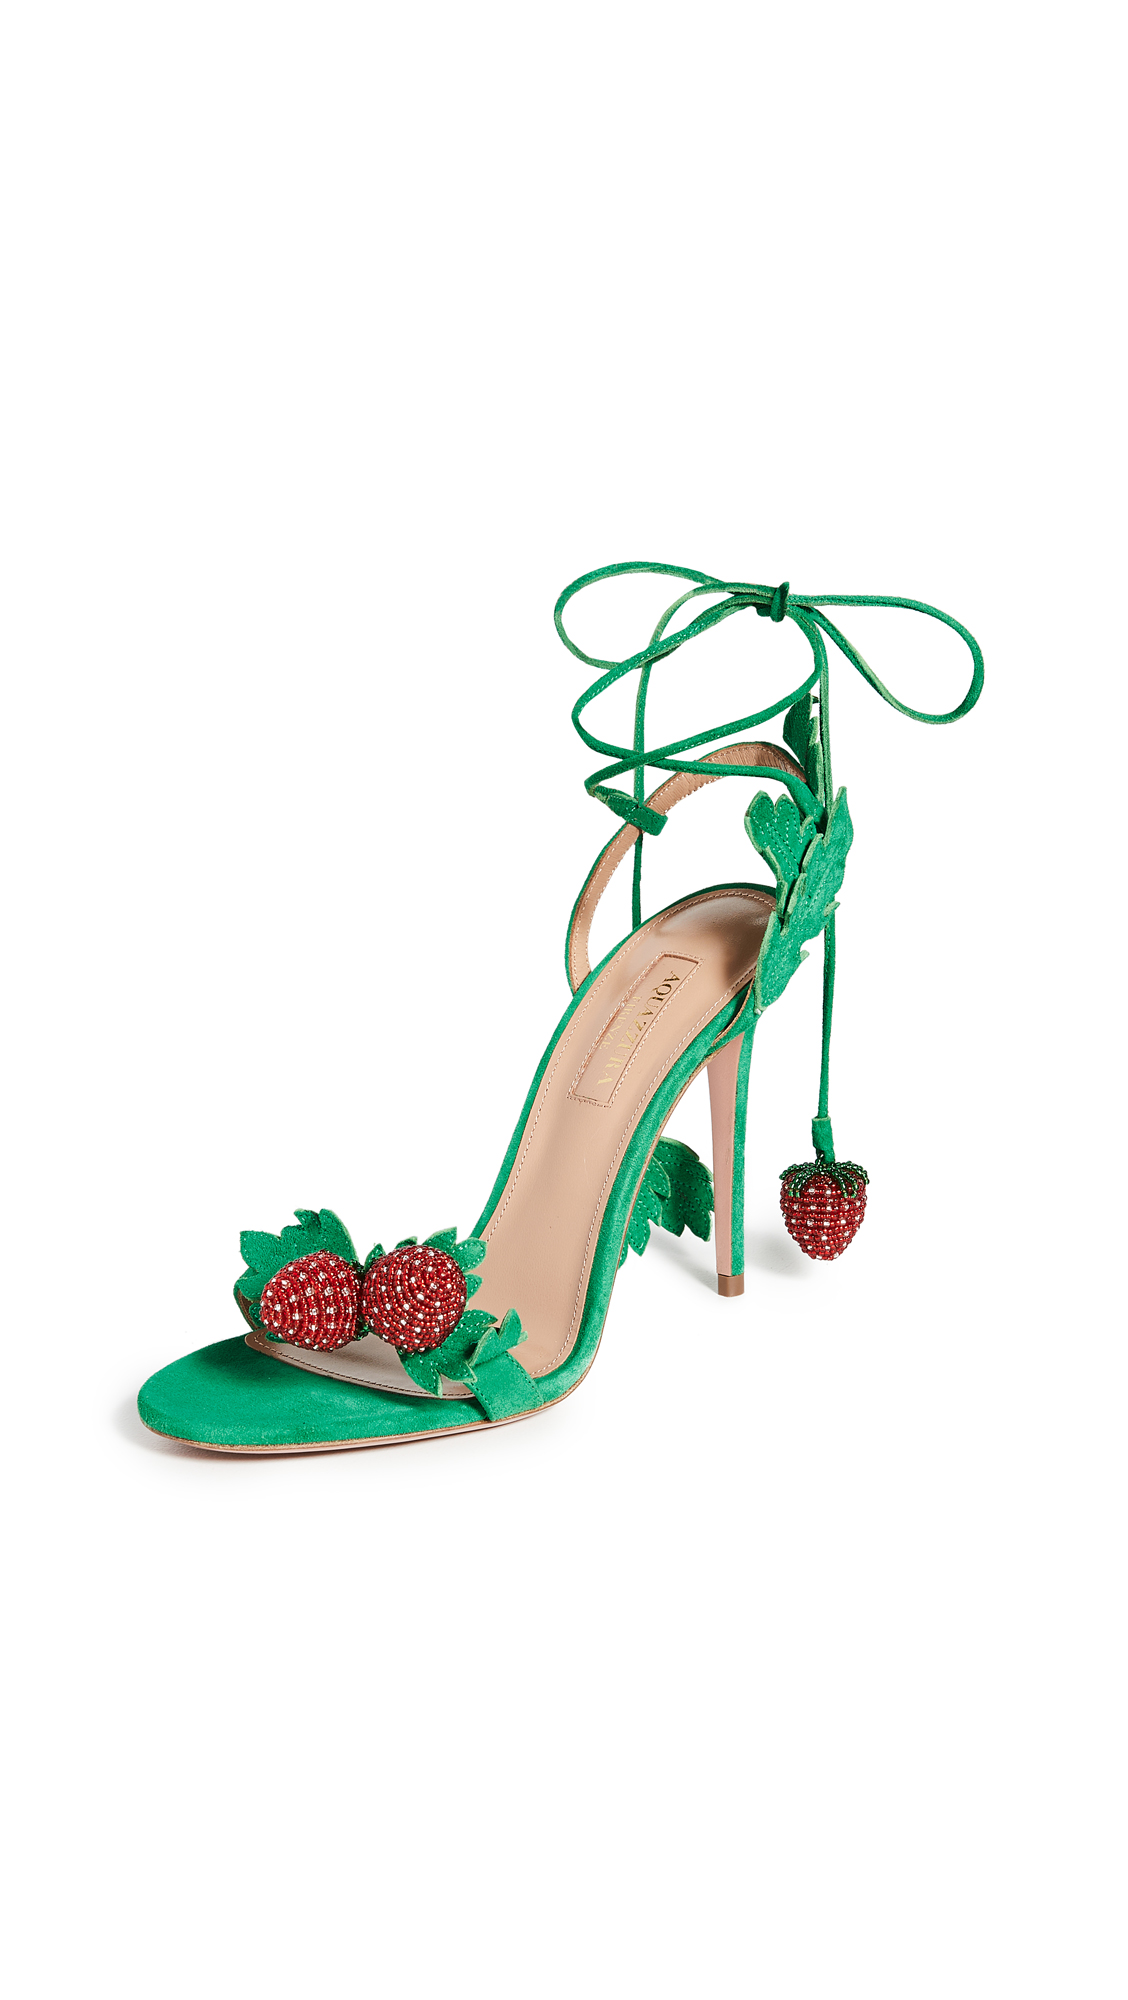 Buy Aquazzura Fragolina Sandals 105mm online, shop Aquazzura